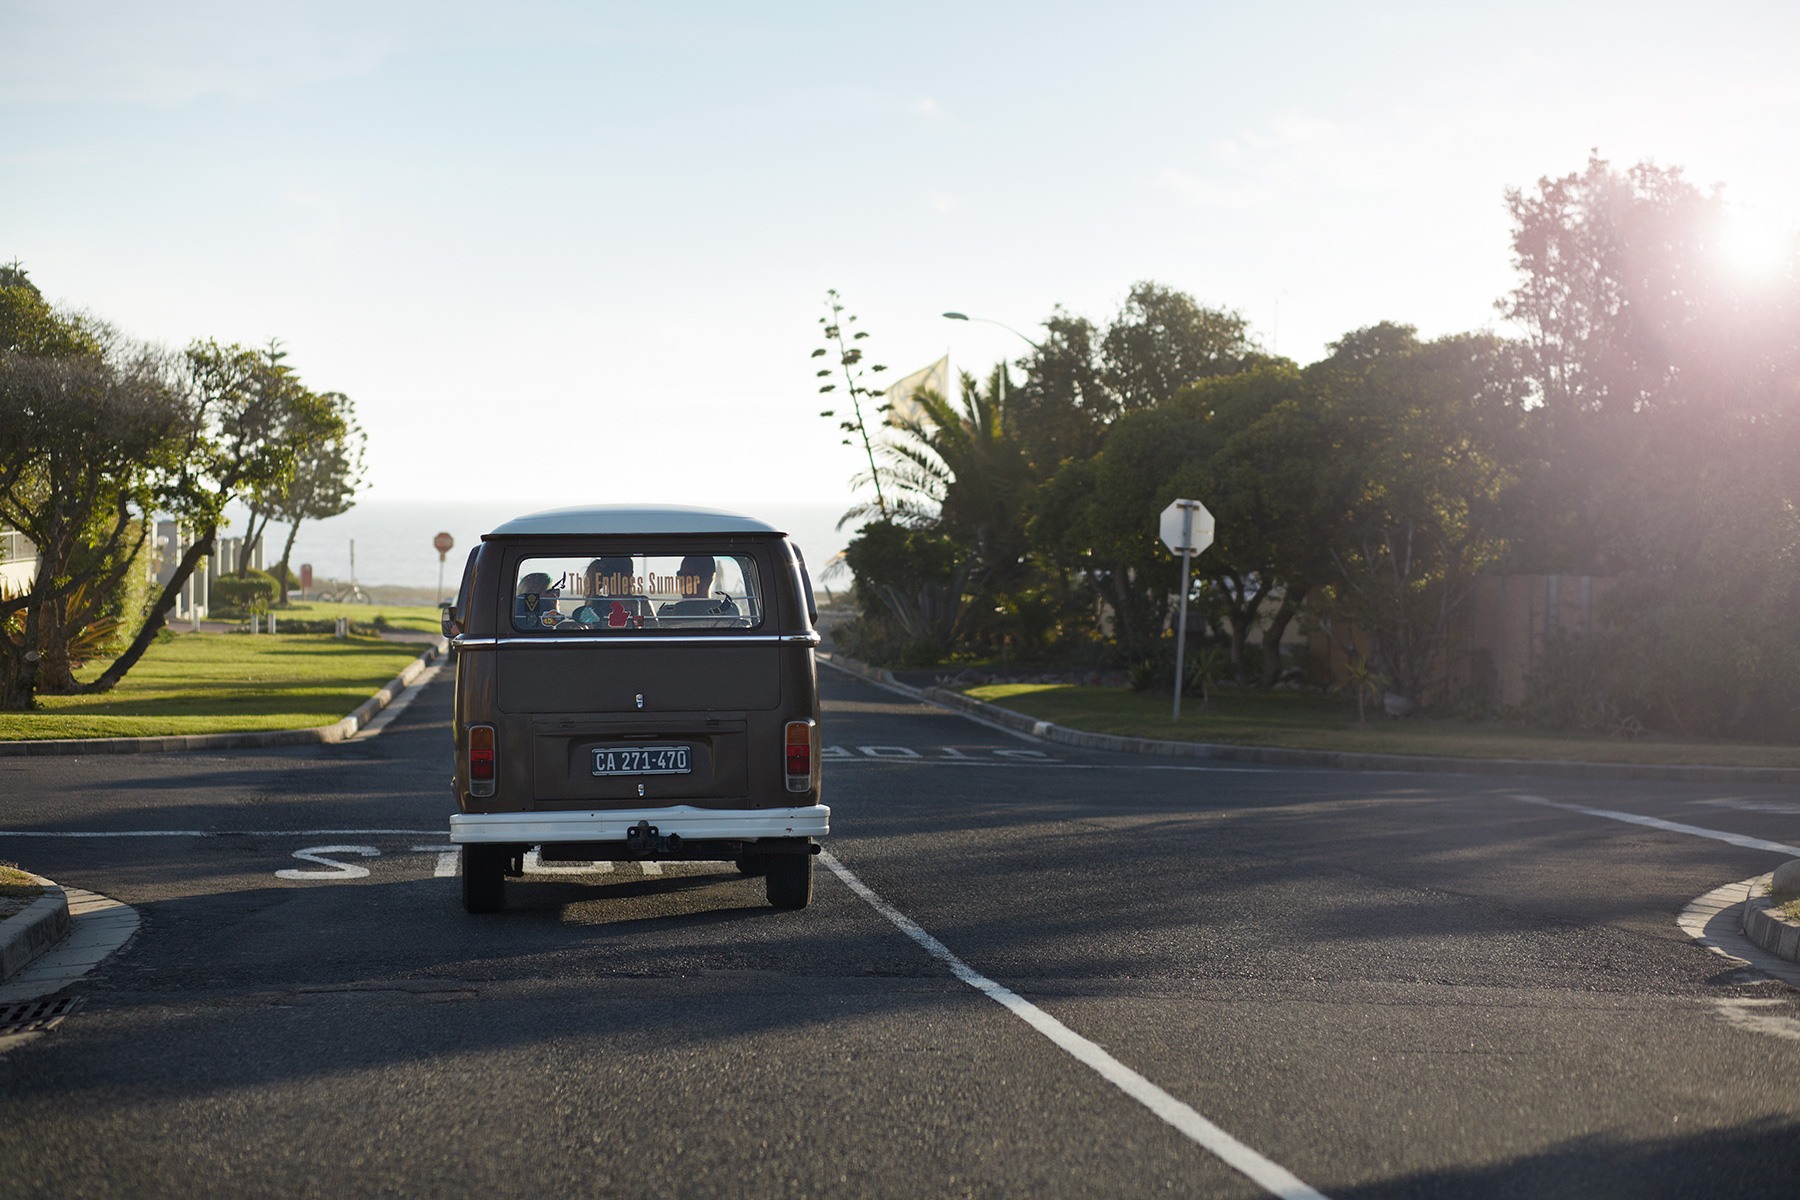 Surfers driving vintage VW bus on the way to the beach